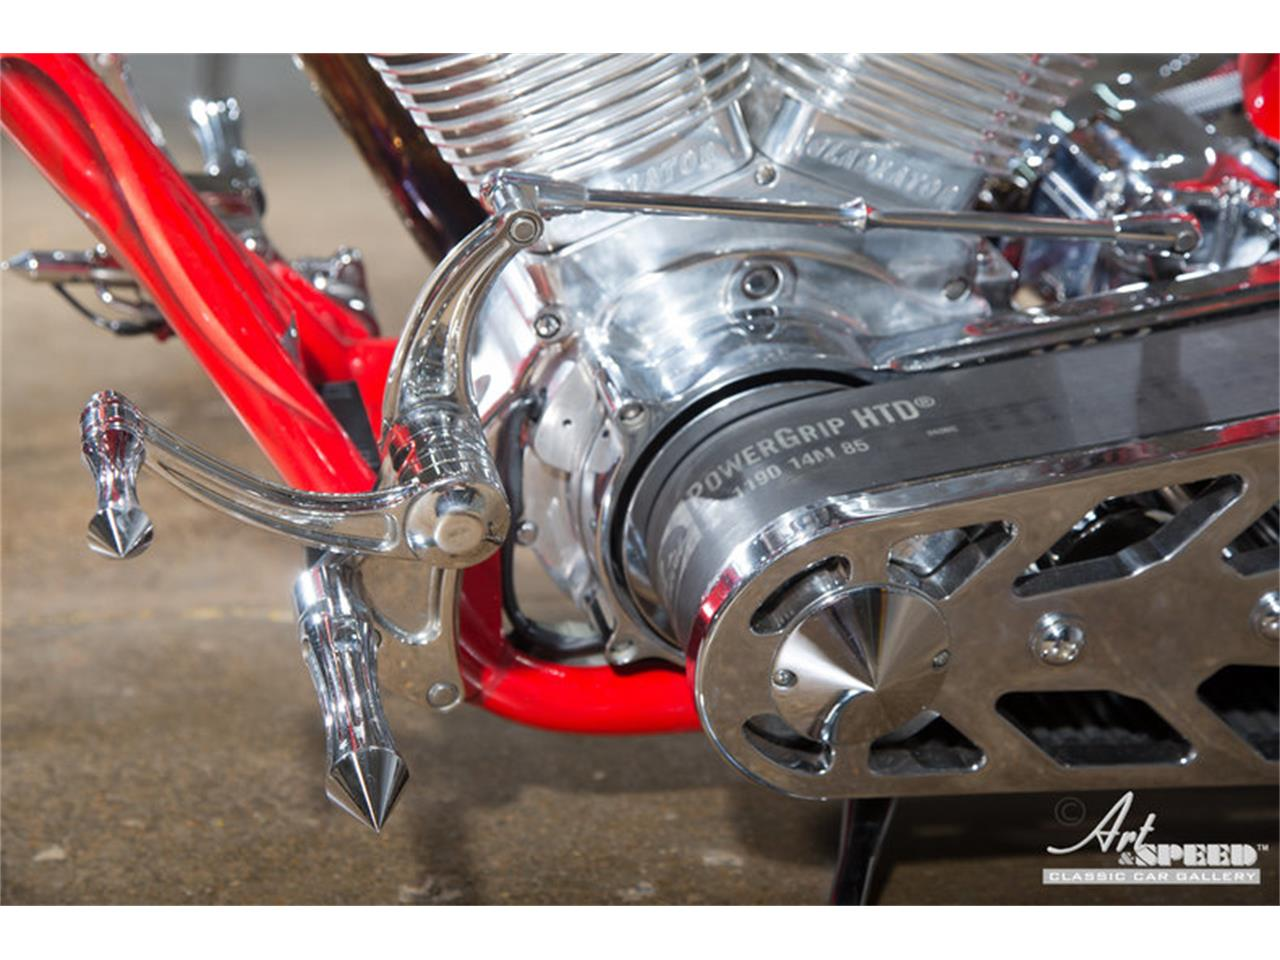 Large Picture of '04 Italdesign Pro MC Custom Chopper - $19,900.00 Offered by Art & Speed - DUSV